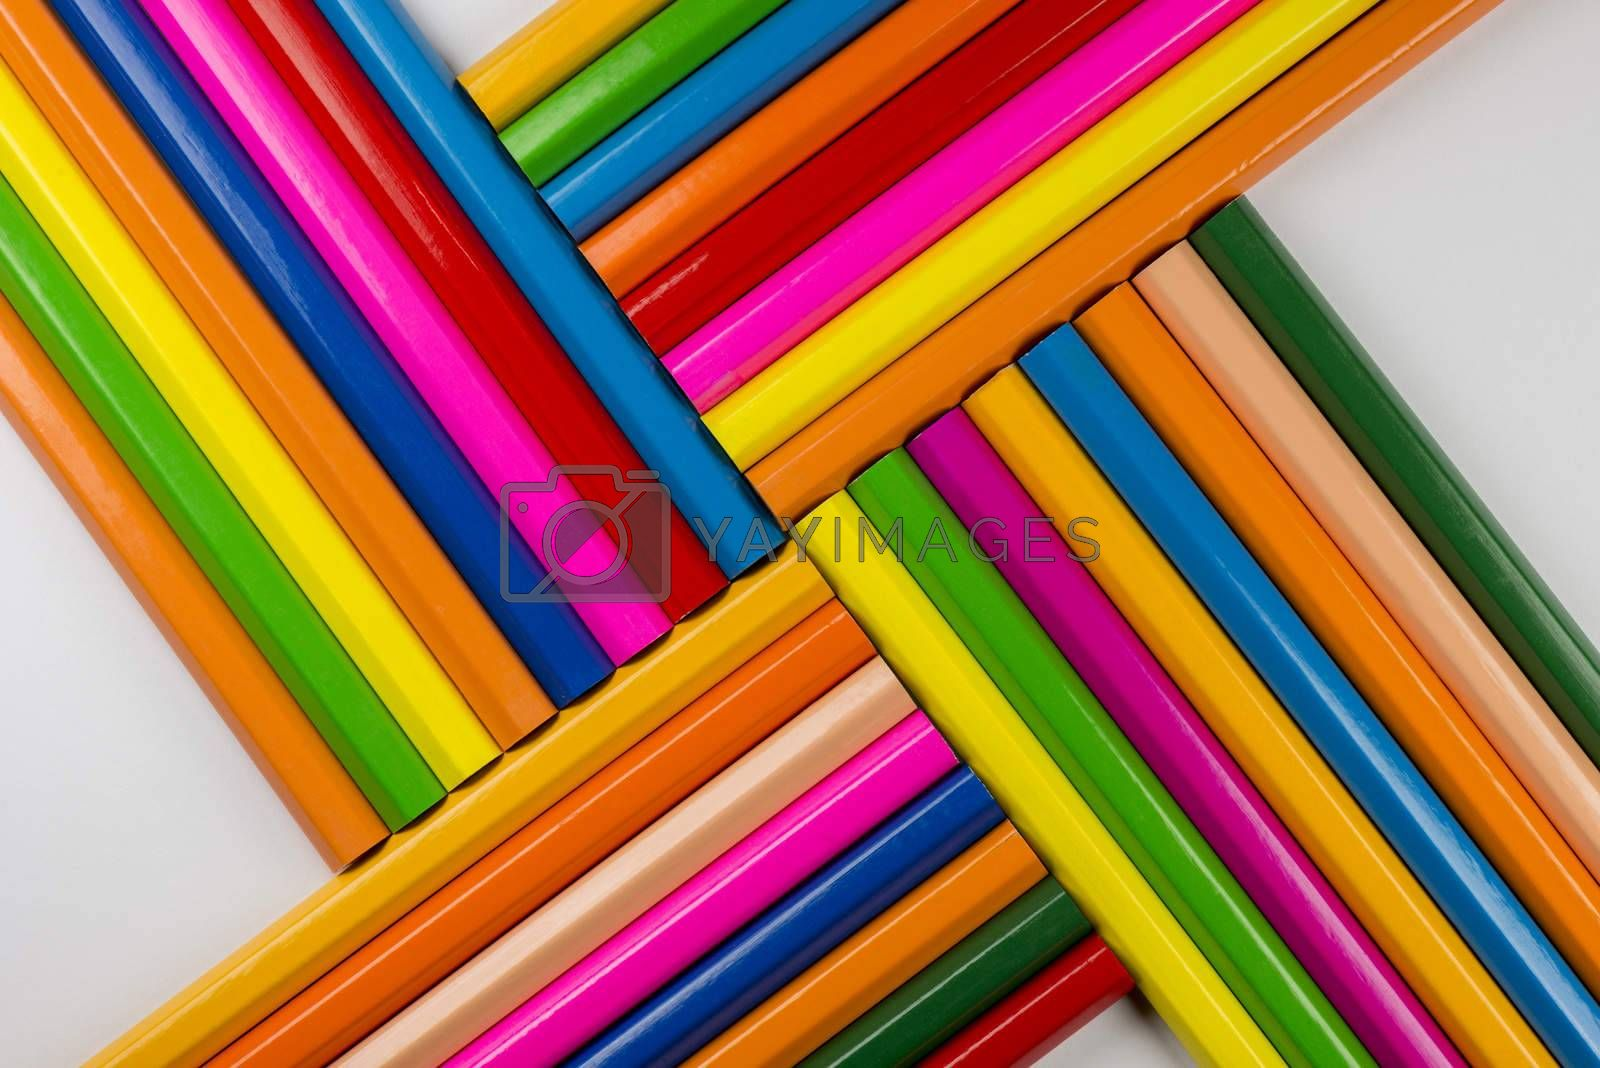 Abstract composition of a set wooden colour pencils  by Tofotografie